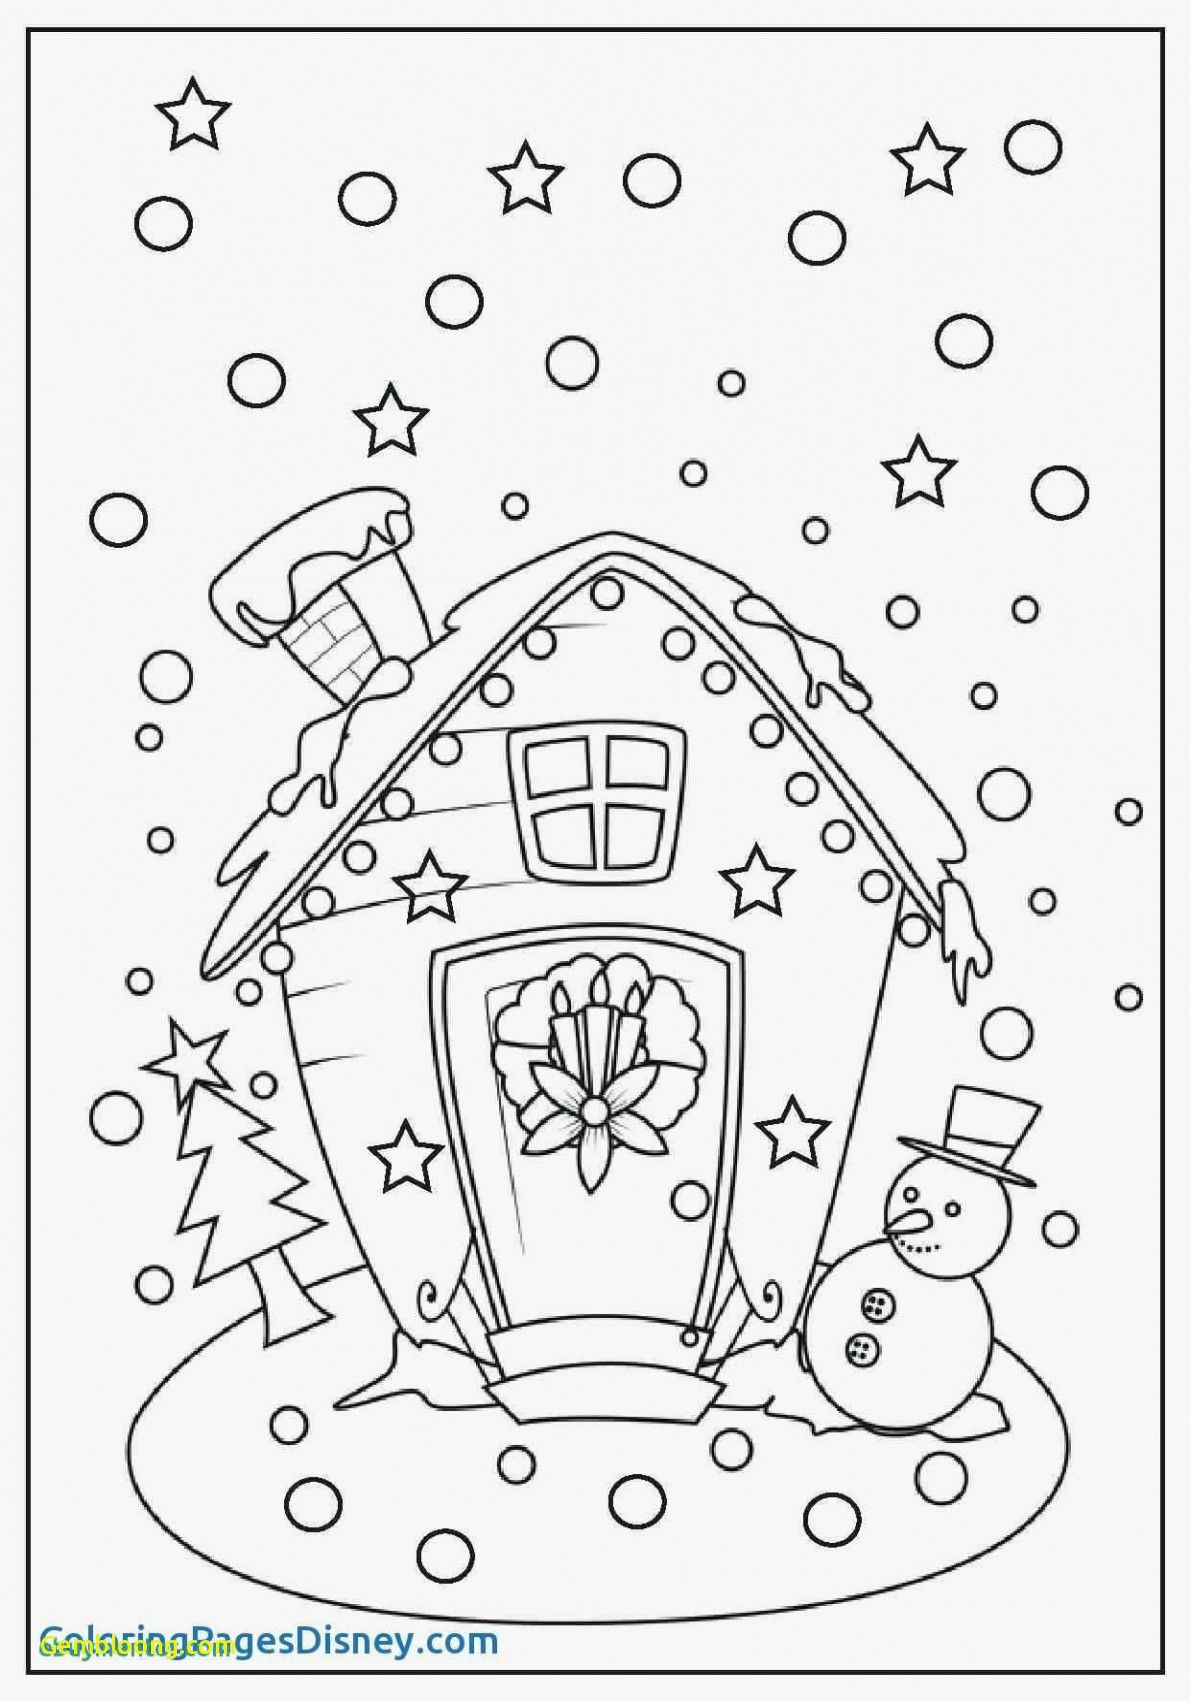 25 Kids Art Projects Easy Diy Crafts Printable Christmas Coloring Pages Christmas Coloring Sheets Coloring Pages Inspirational